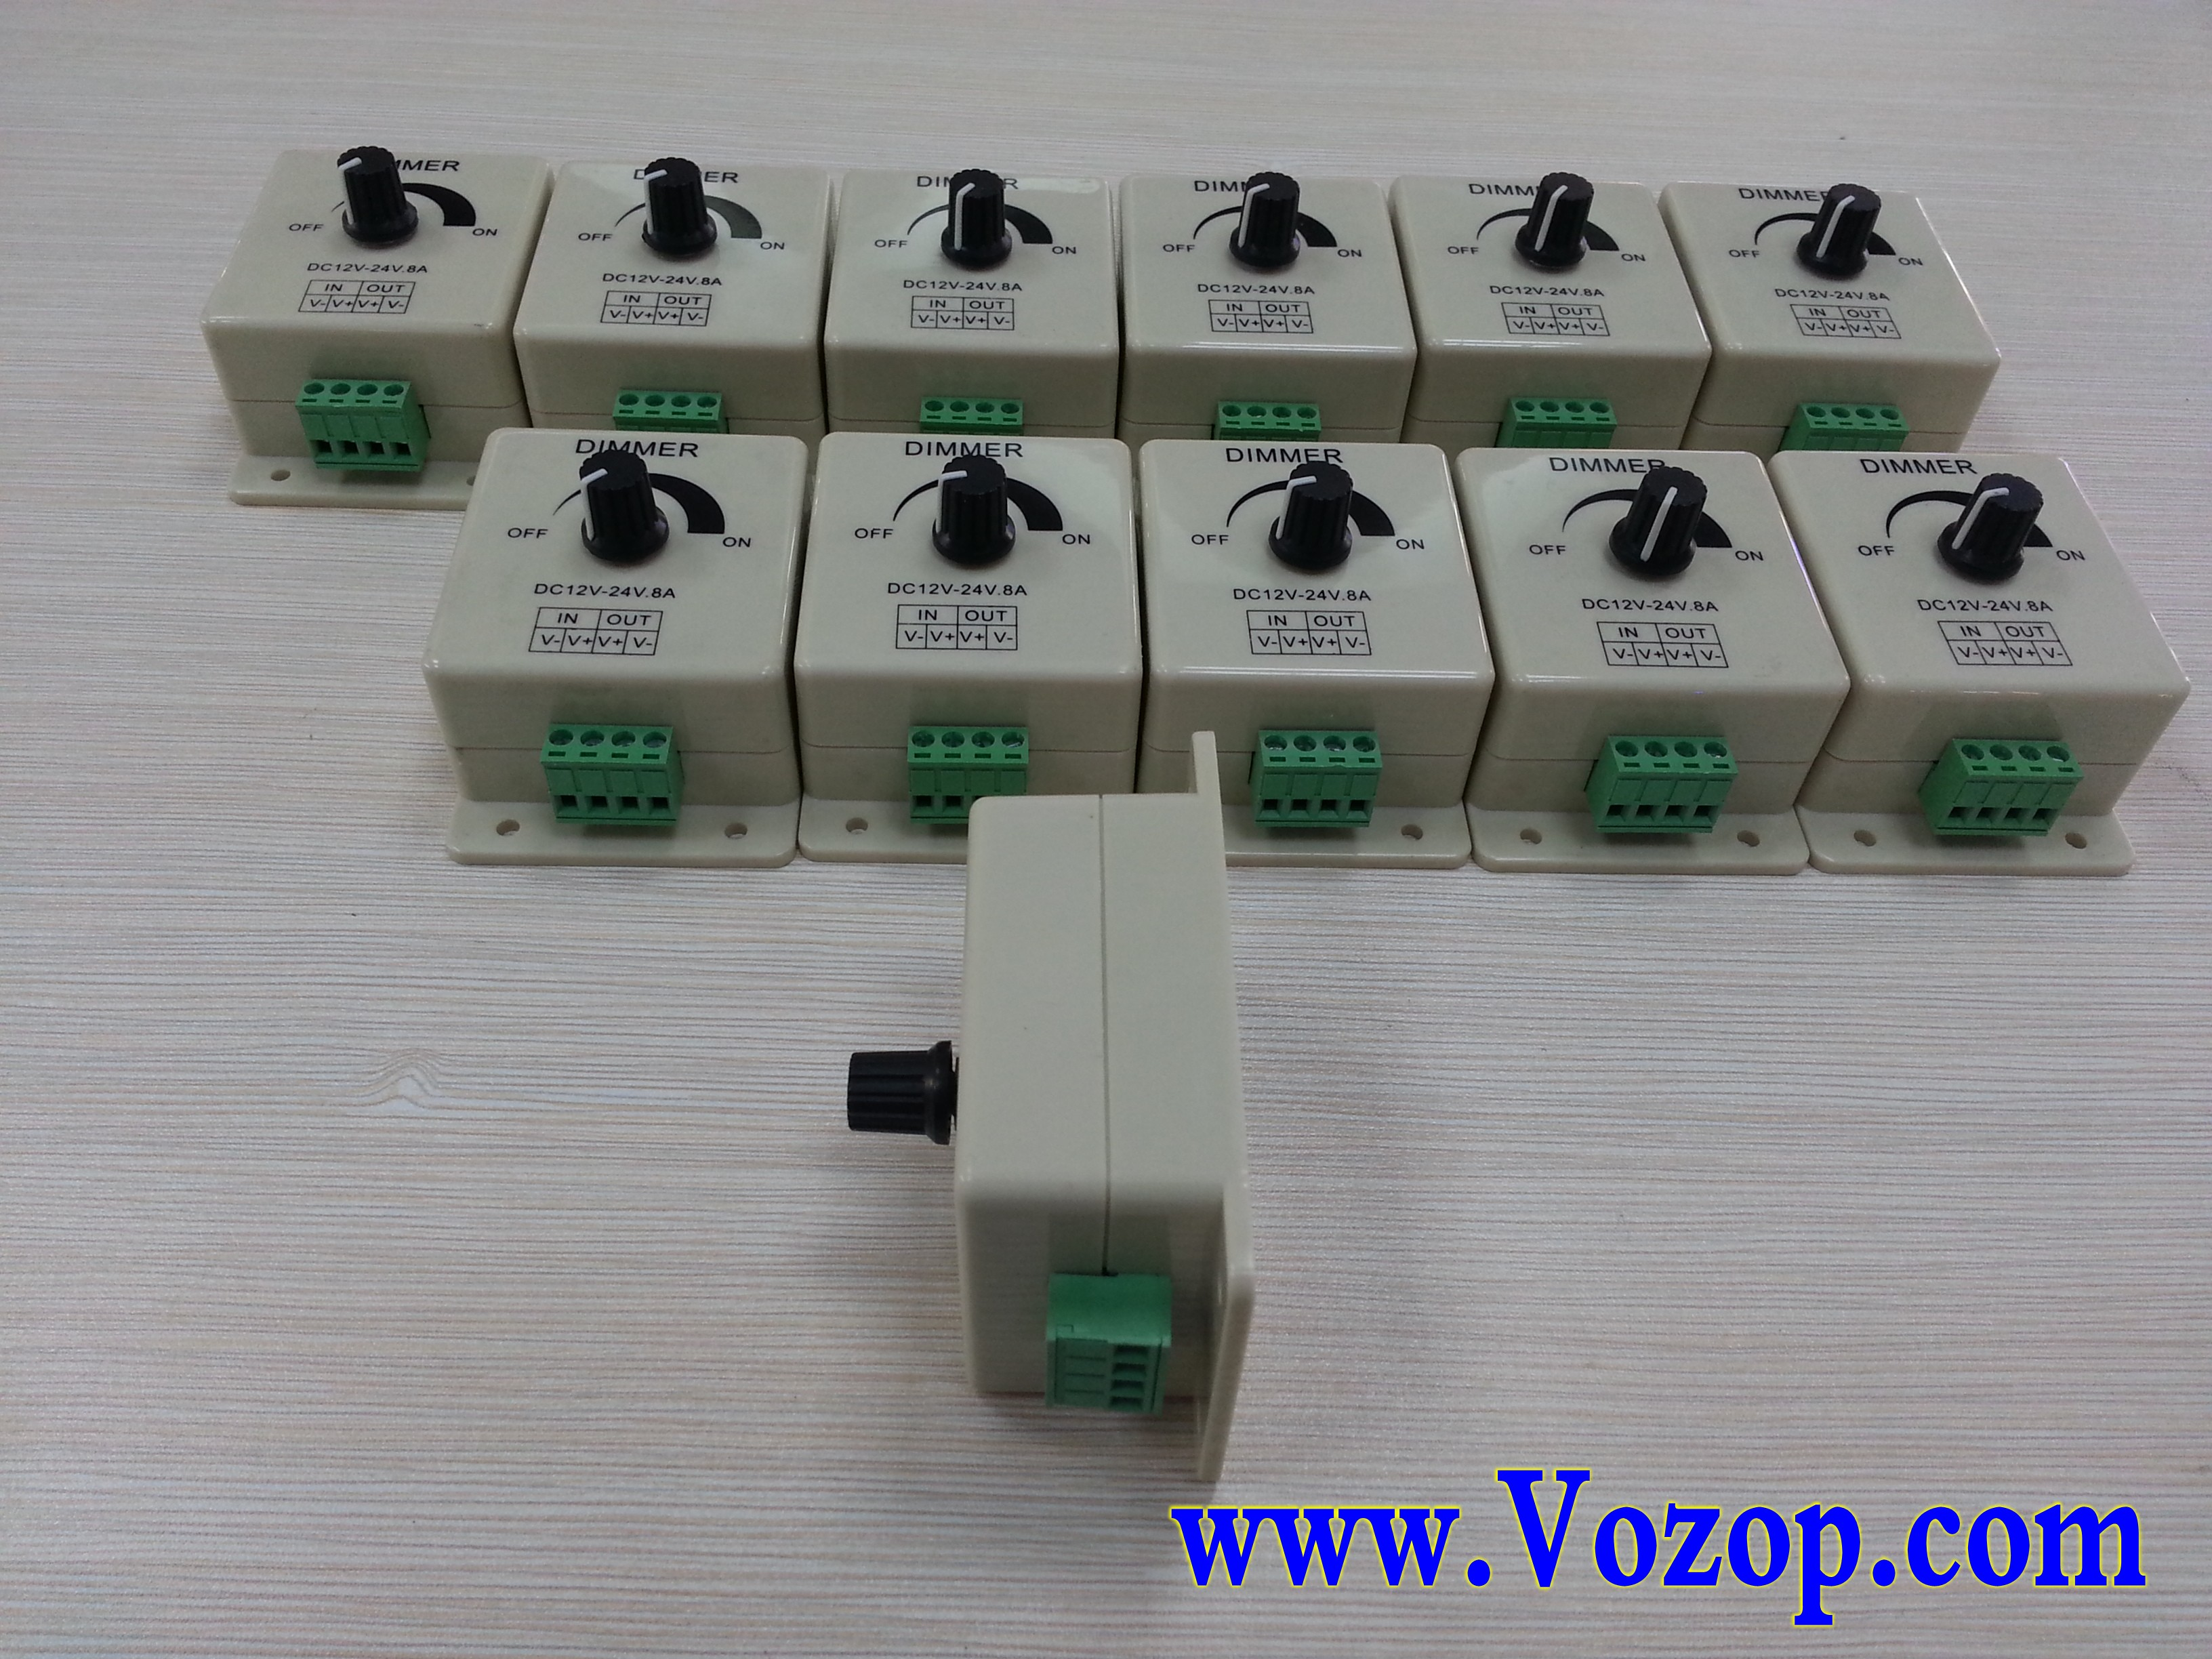 led_dimming_control_dimmer_for_led_Lighting_project